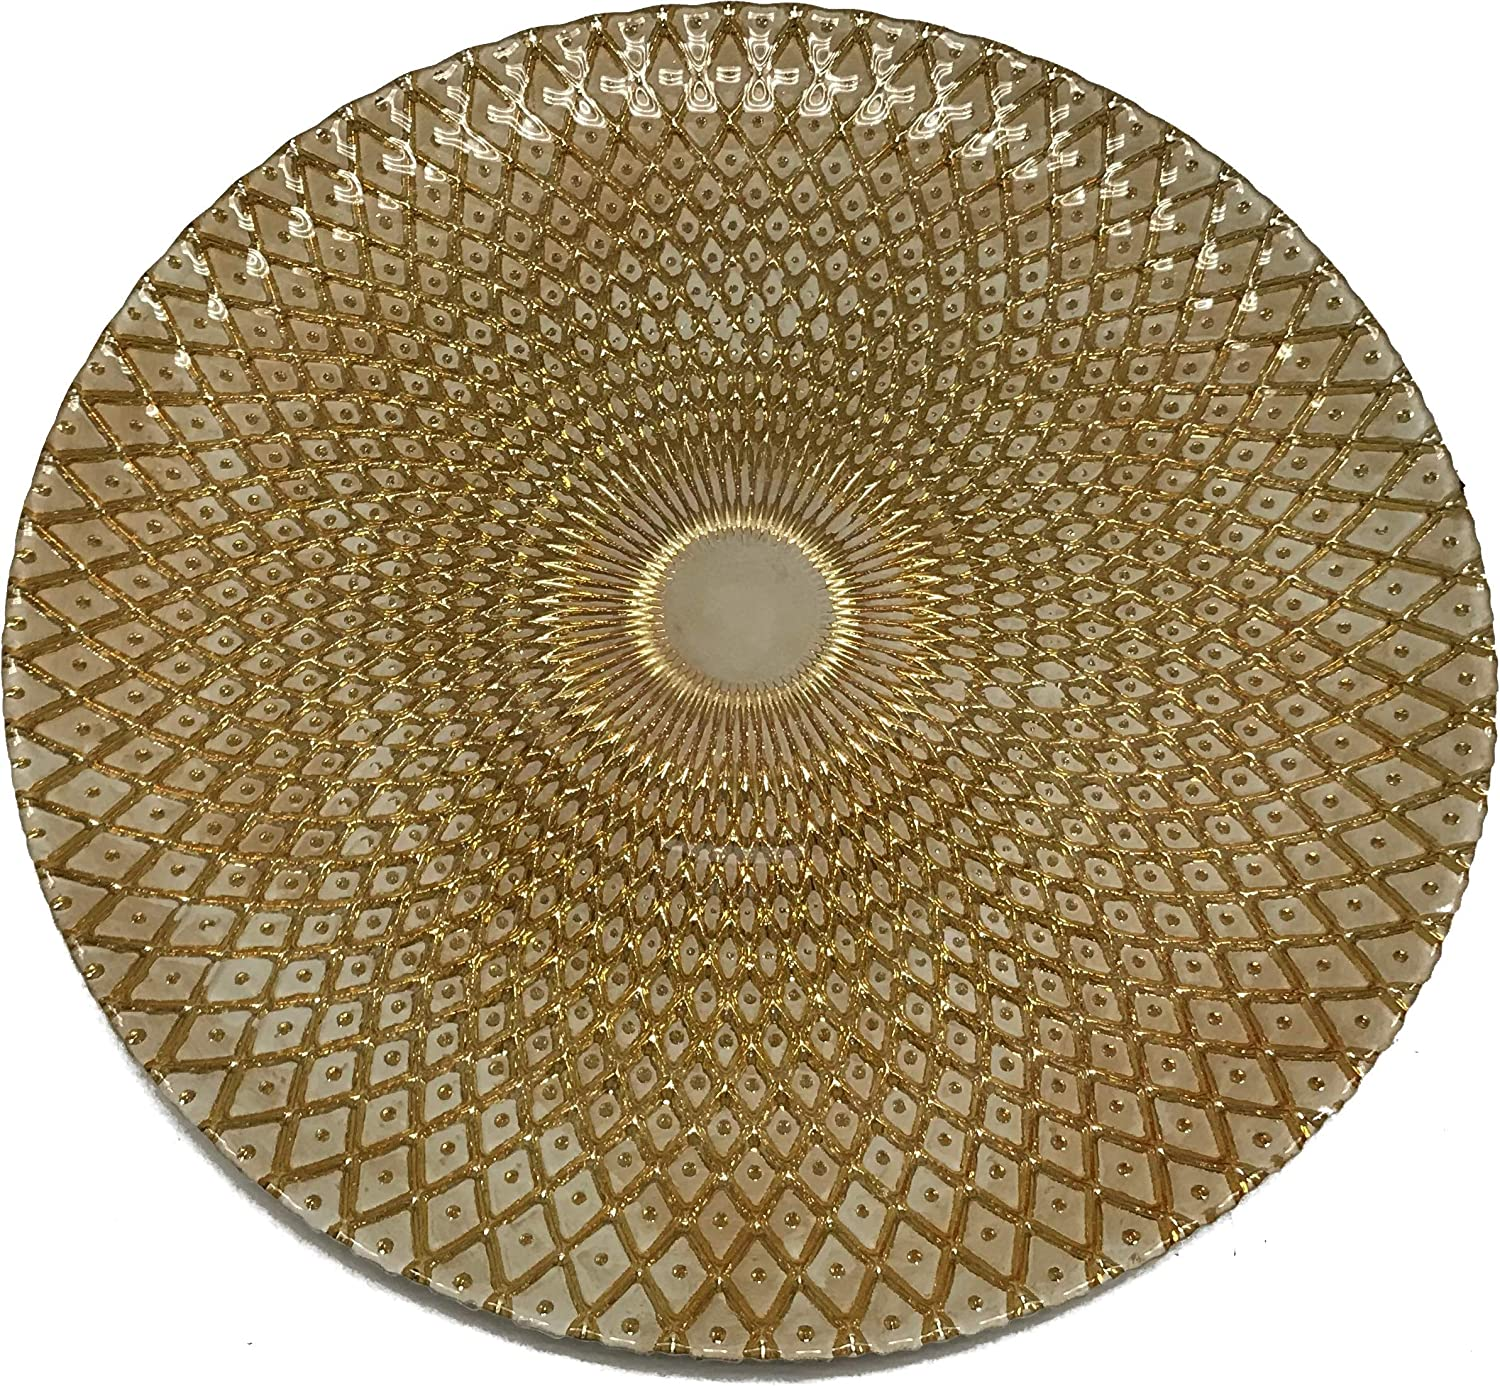 """Circleware 03090/AM Set of 4-13"""" Glass Charger Plates Dinnerware Hard Cut Style Round All Occasion Dishes, Limited Edition Home Kitchen Food Service Decor 4-pack Gold & White"""